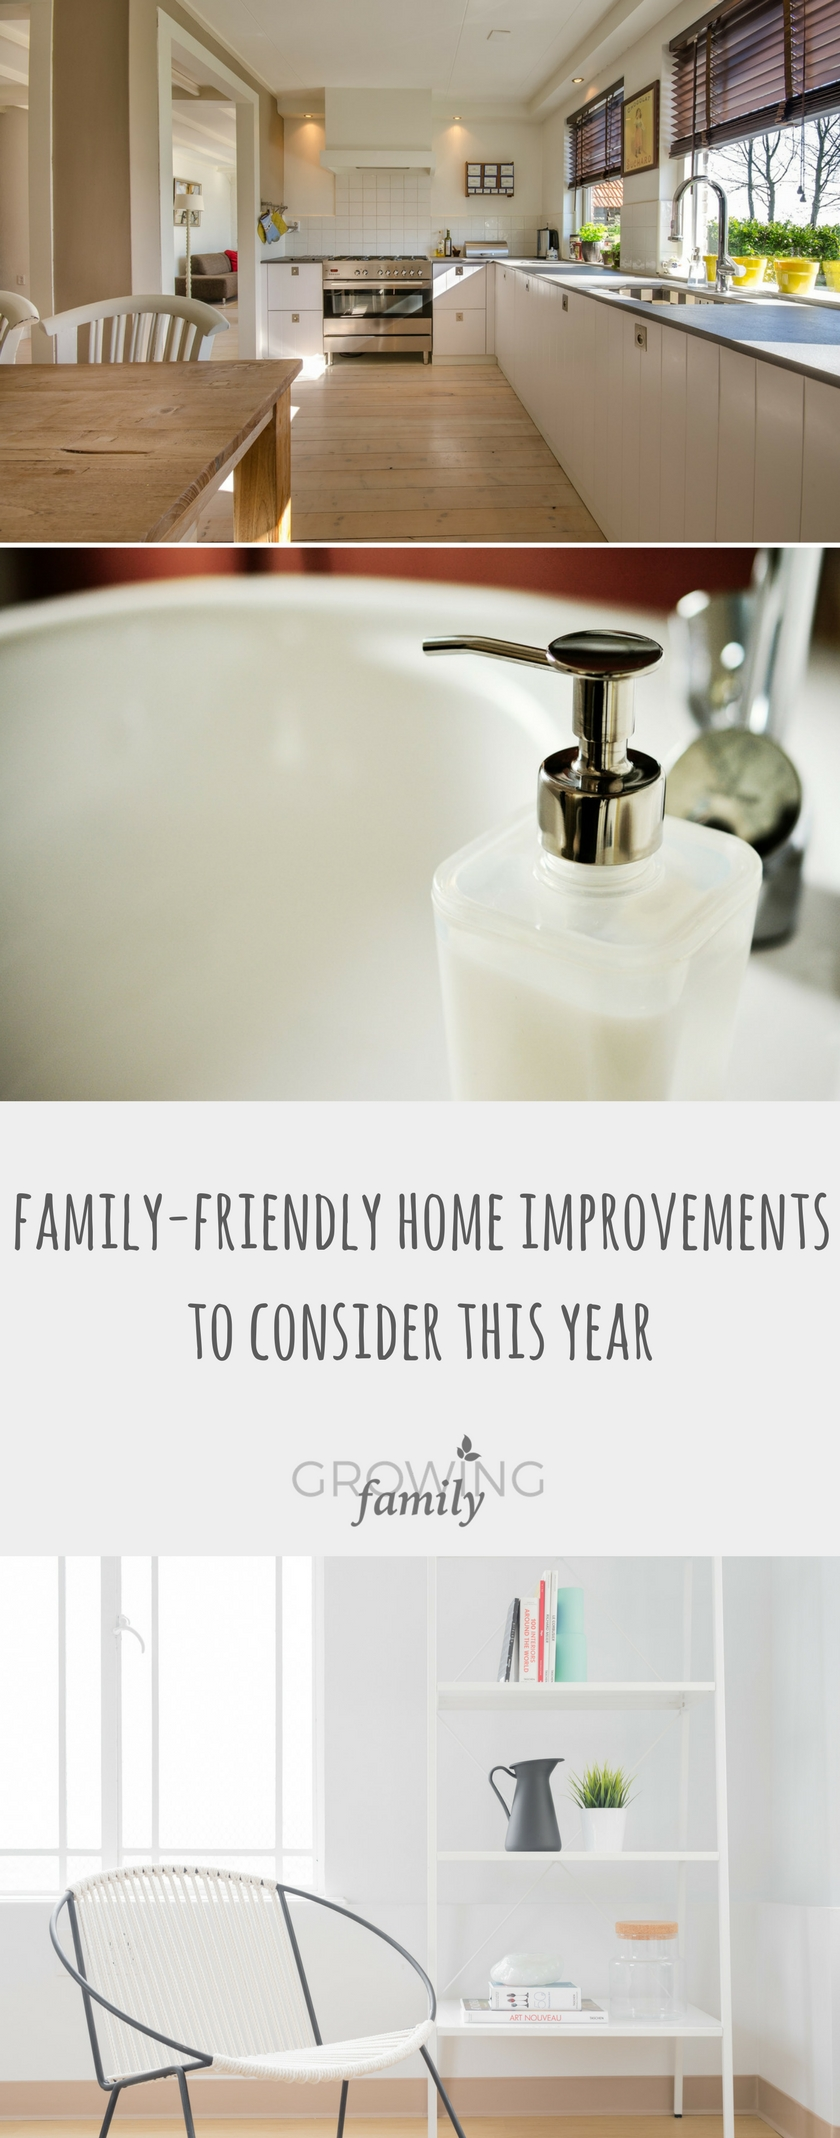 5 family-friendly home improvements to consider this year - Growing ...